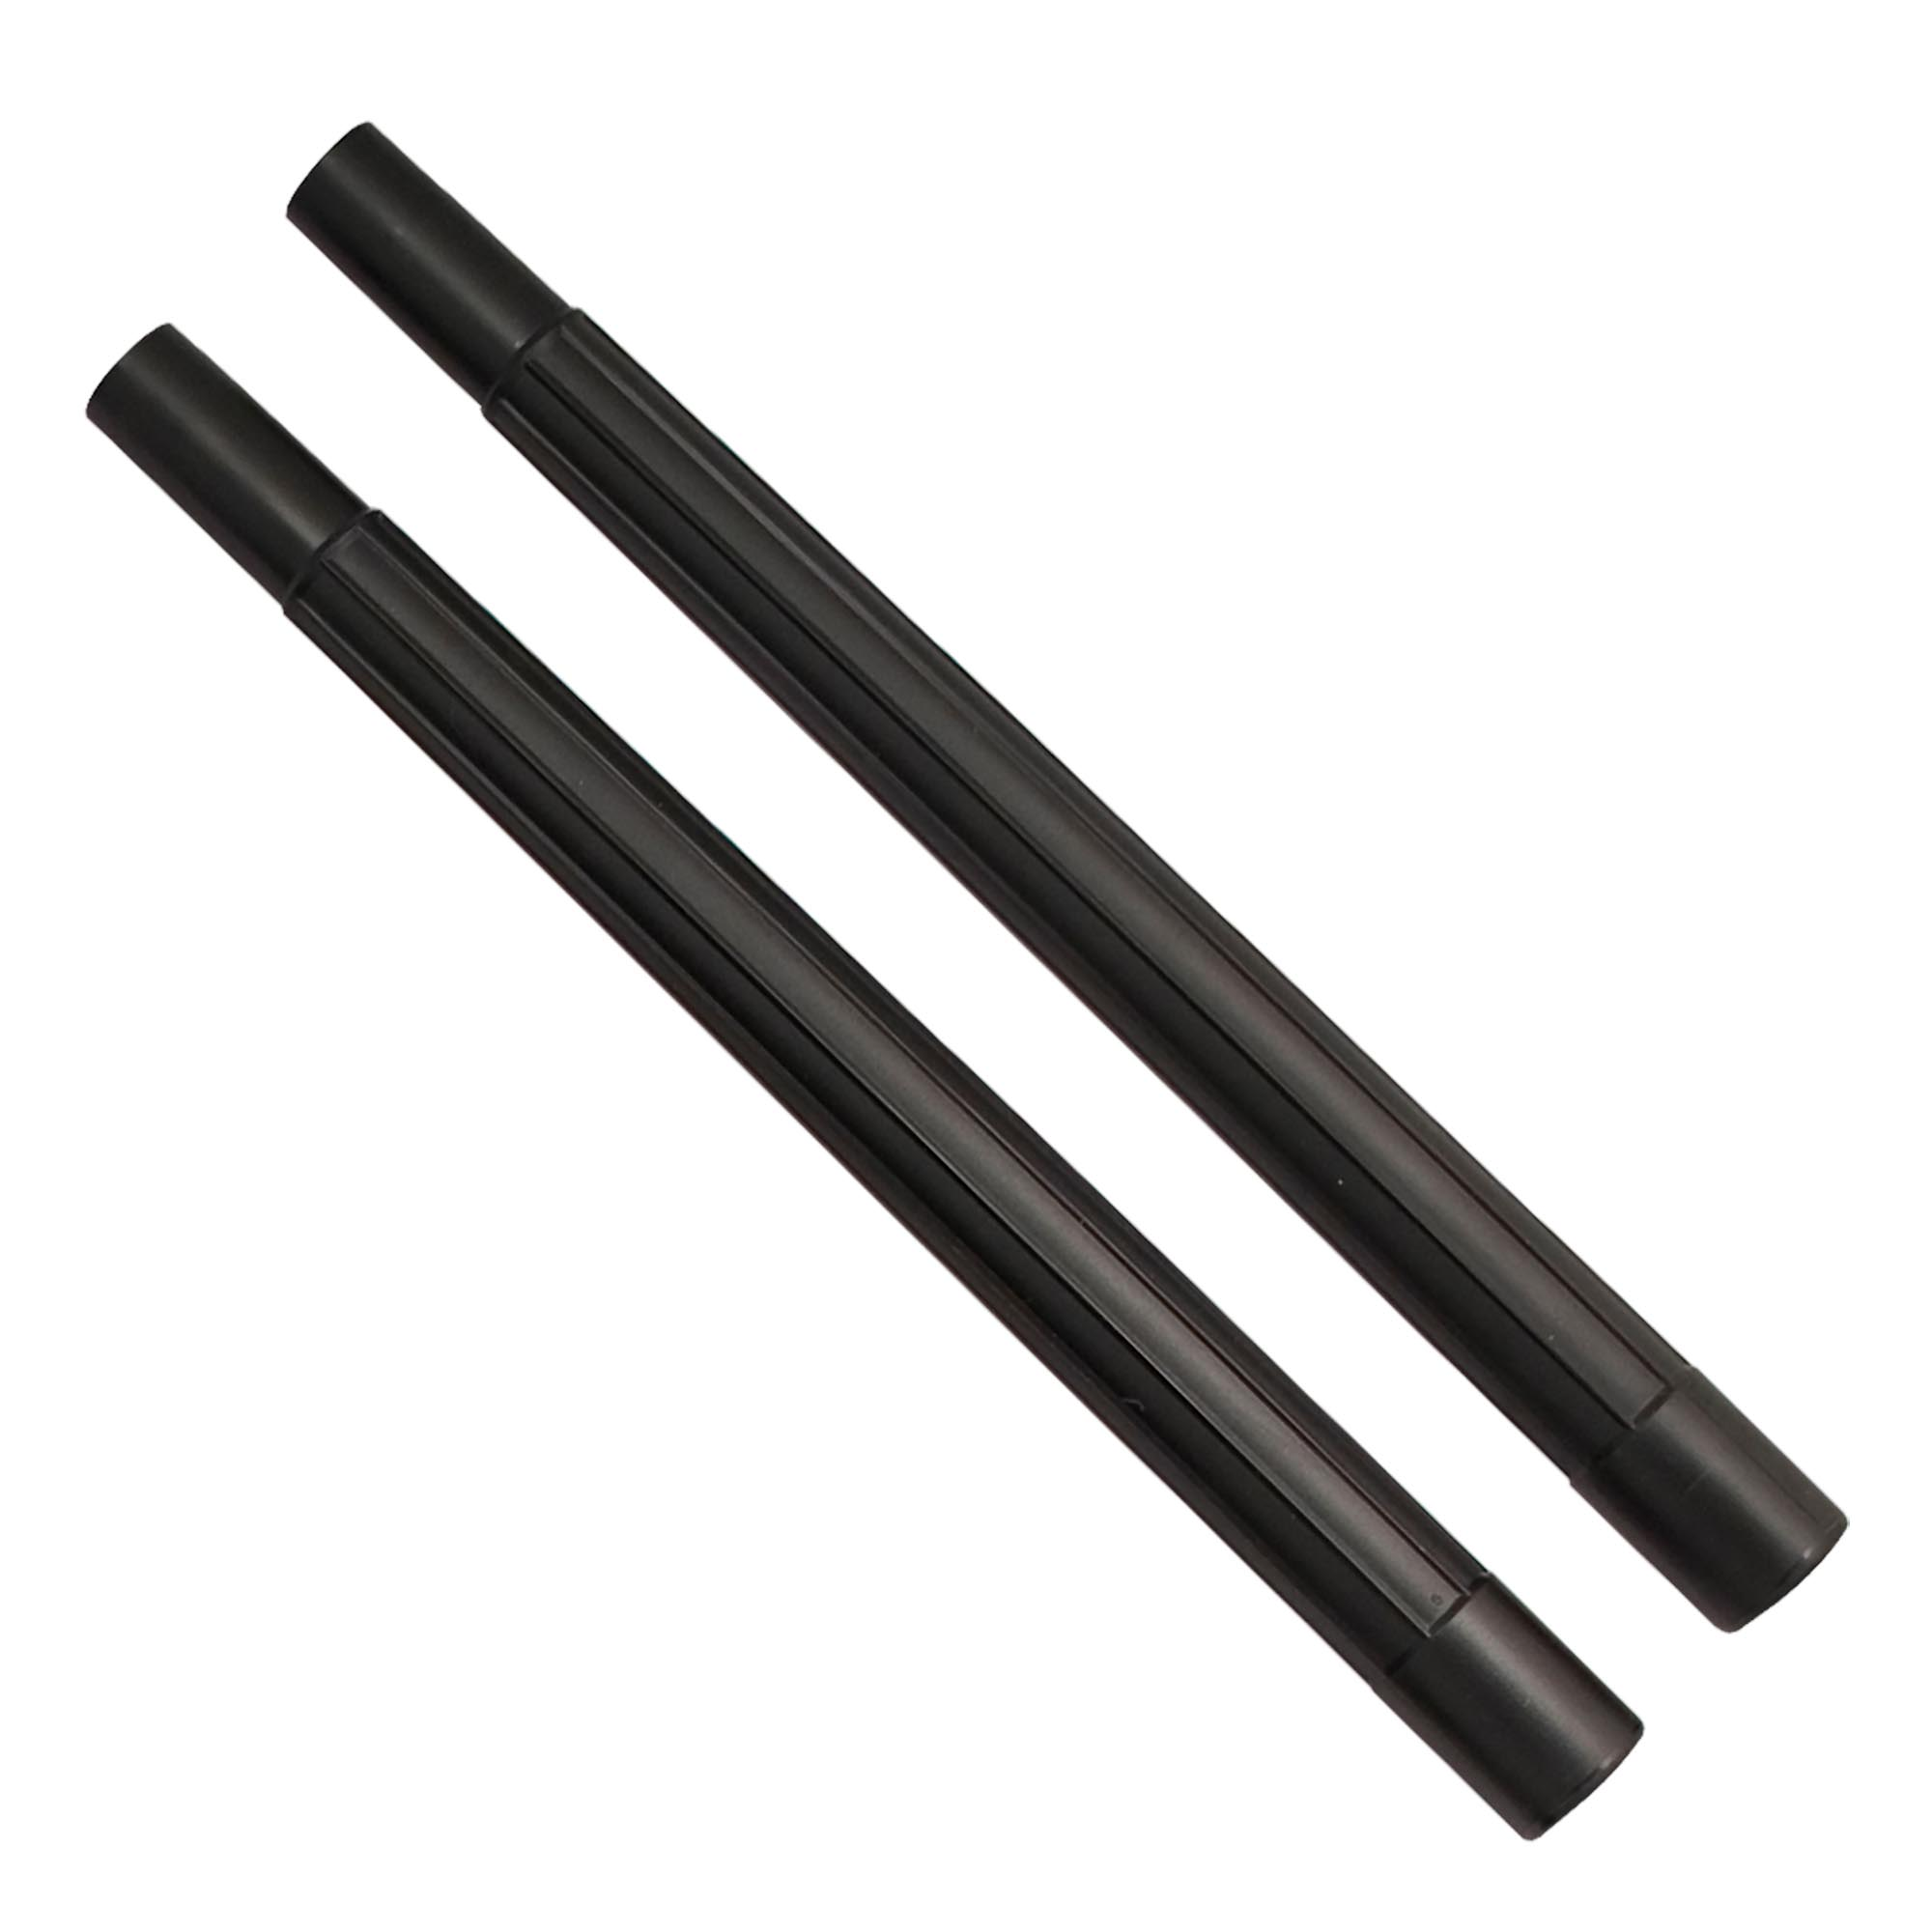 Model 6568 Straight Wand, 19 Long